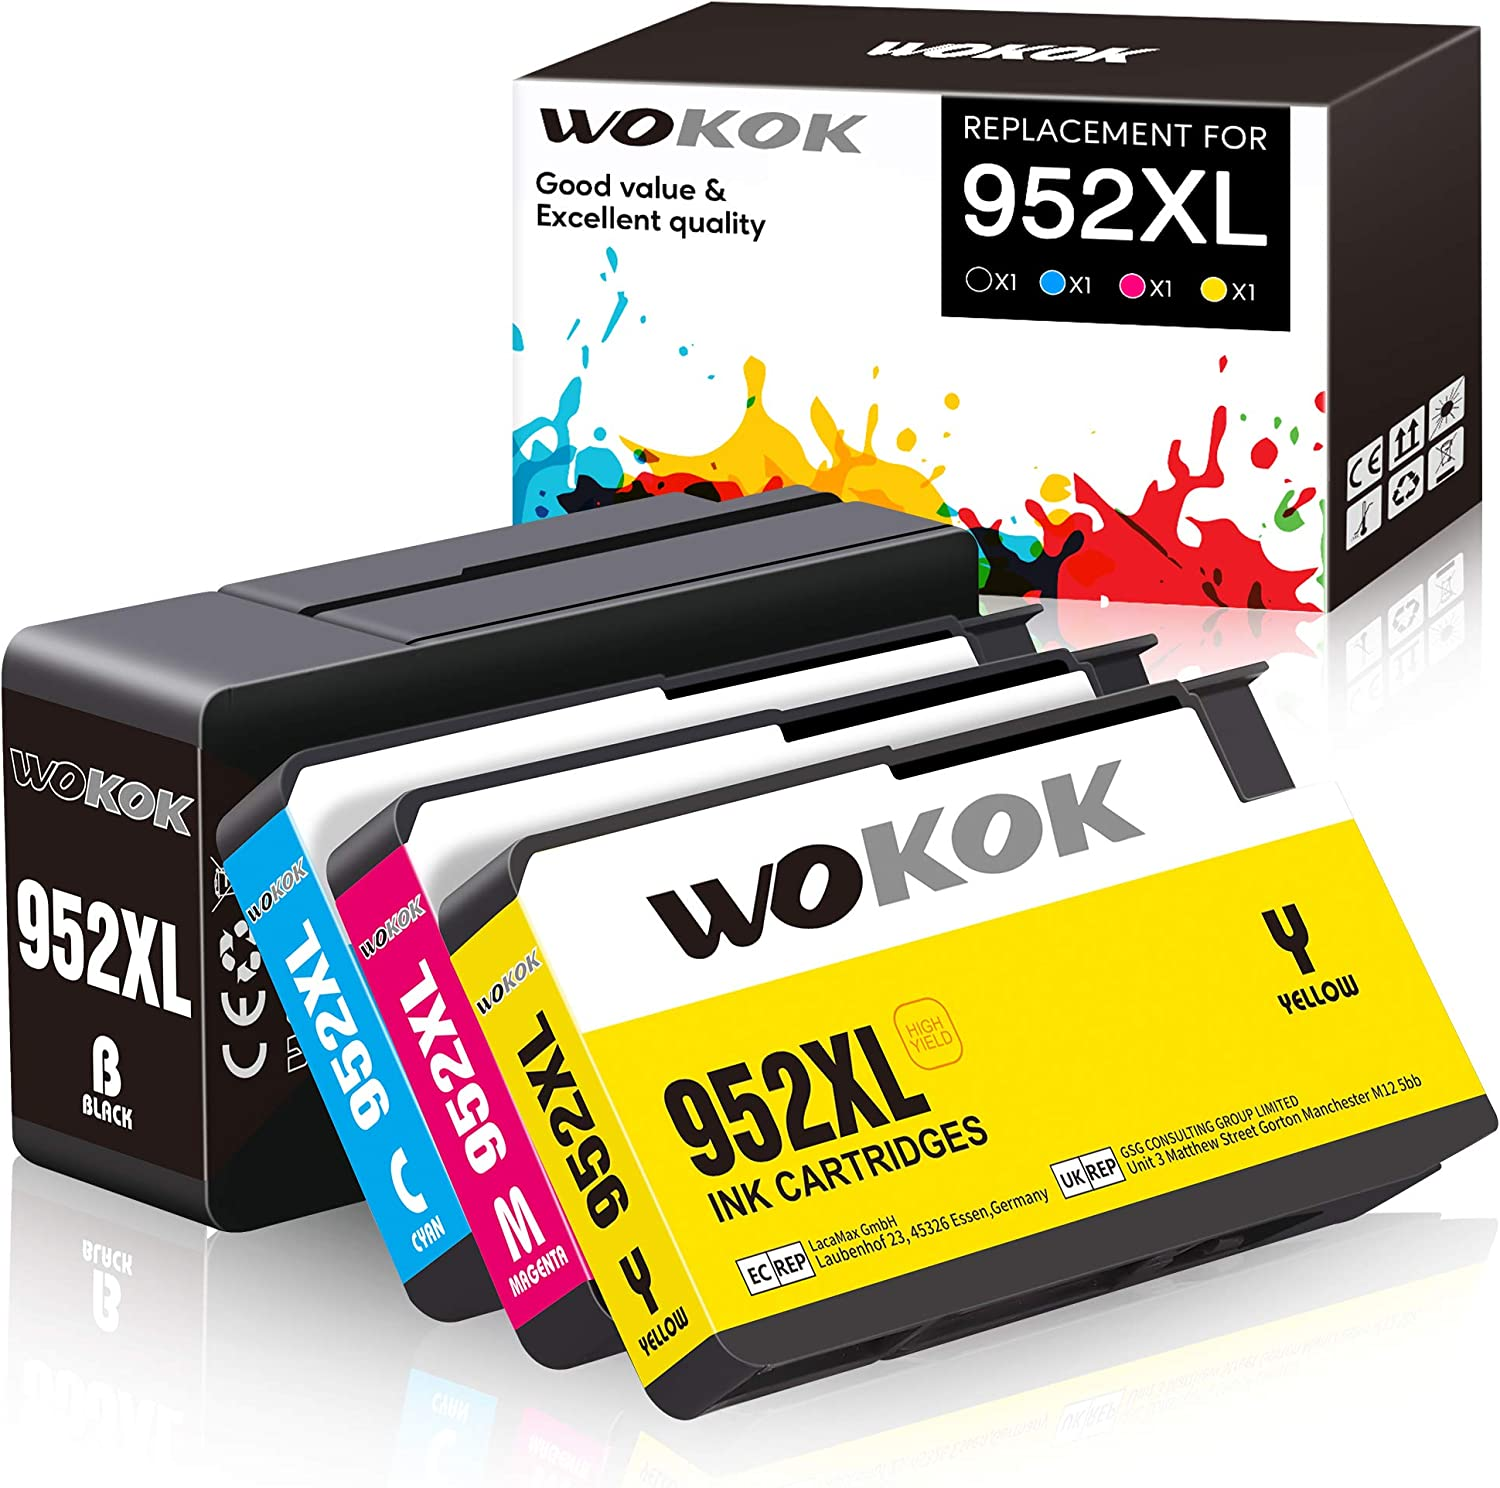 WOKOK Remanufactured Ink Cartridge Replacement for HP 952XL Ink Cartridges Combo Pack, with Updated Chips for HP OfficeJet Pro 8710 8720 8740 8730 8728 8702 7720 8210 8715 8216 8725 Printer (4-Pack)